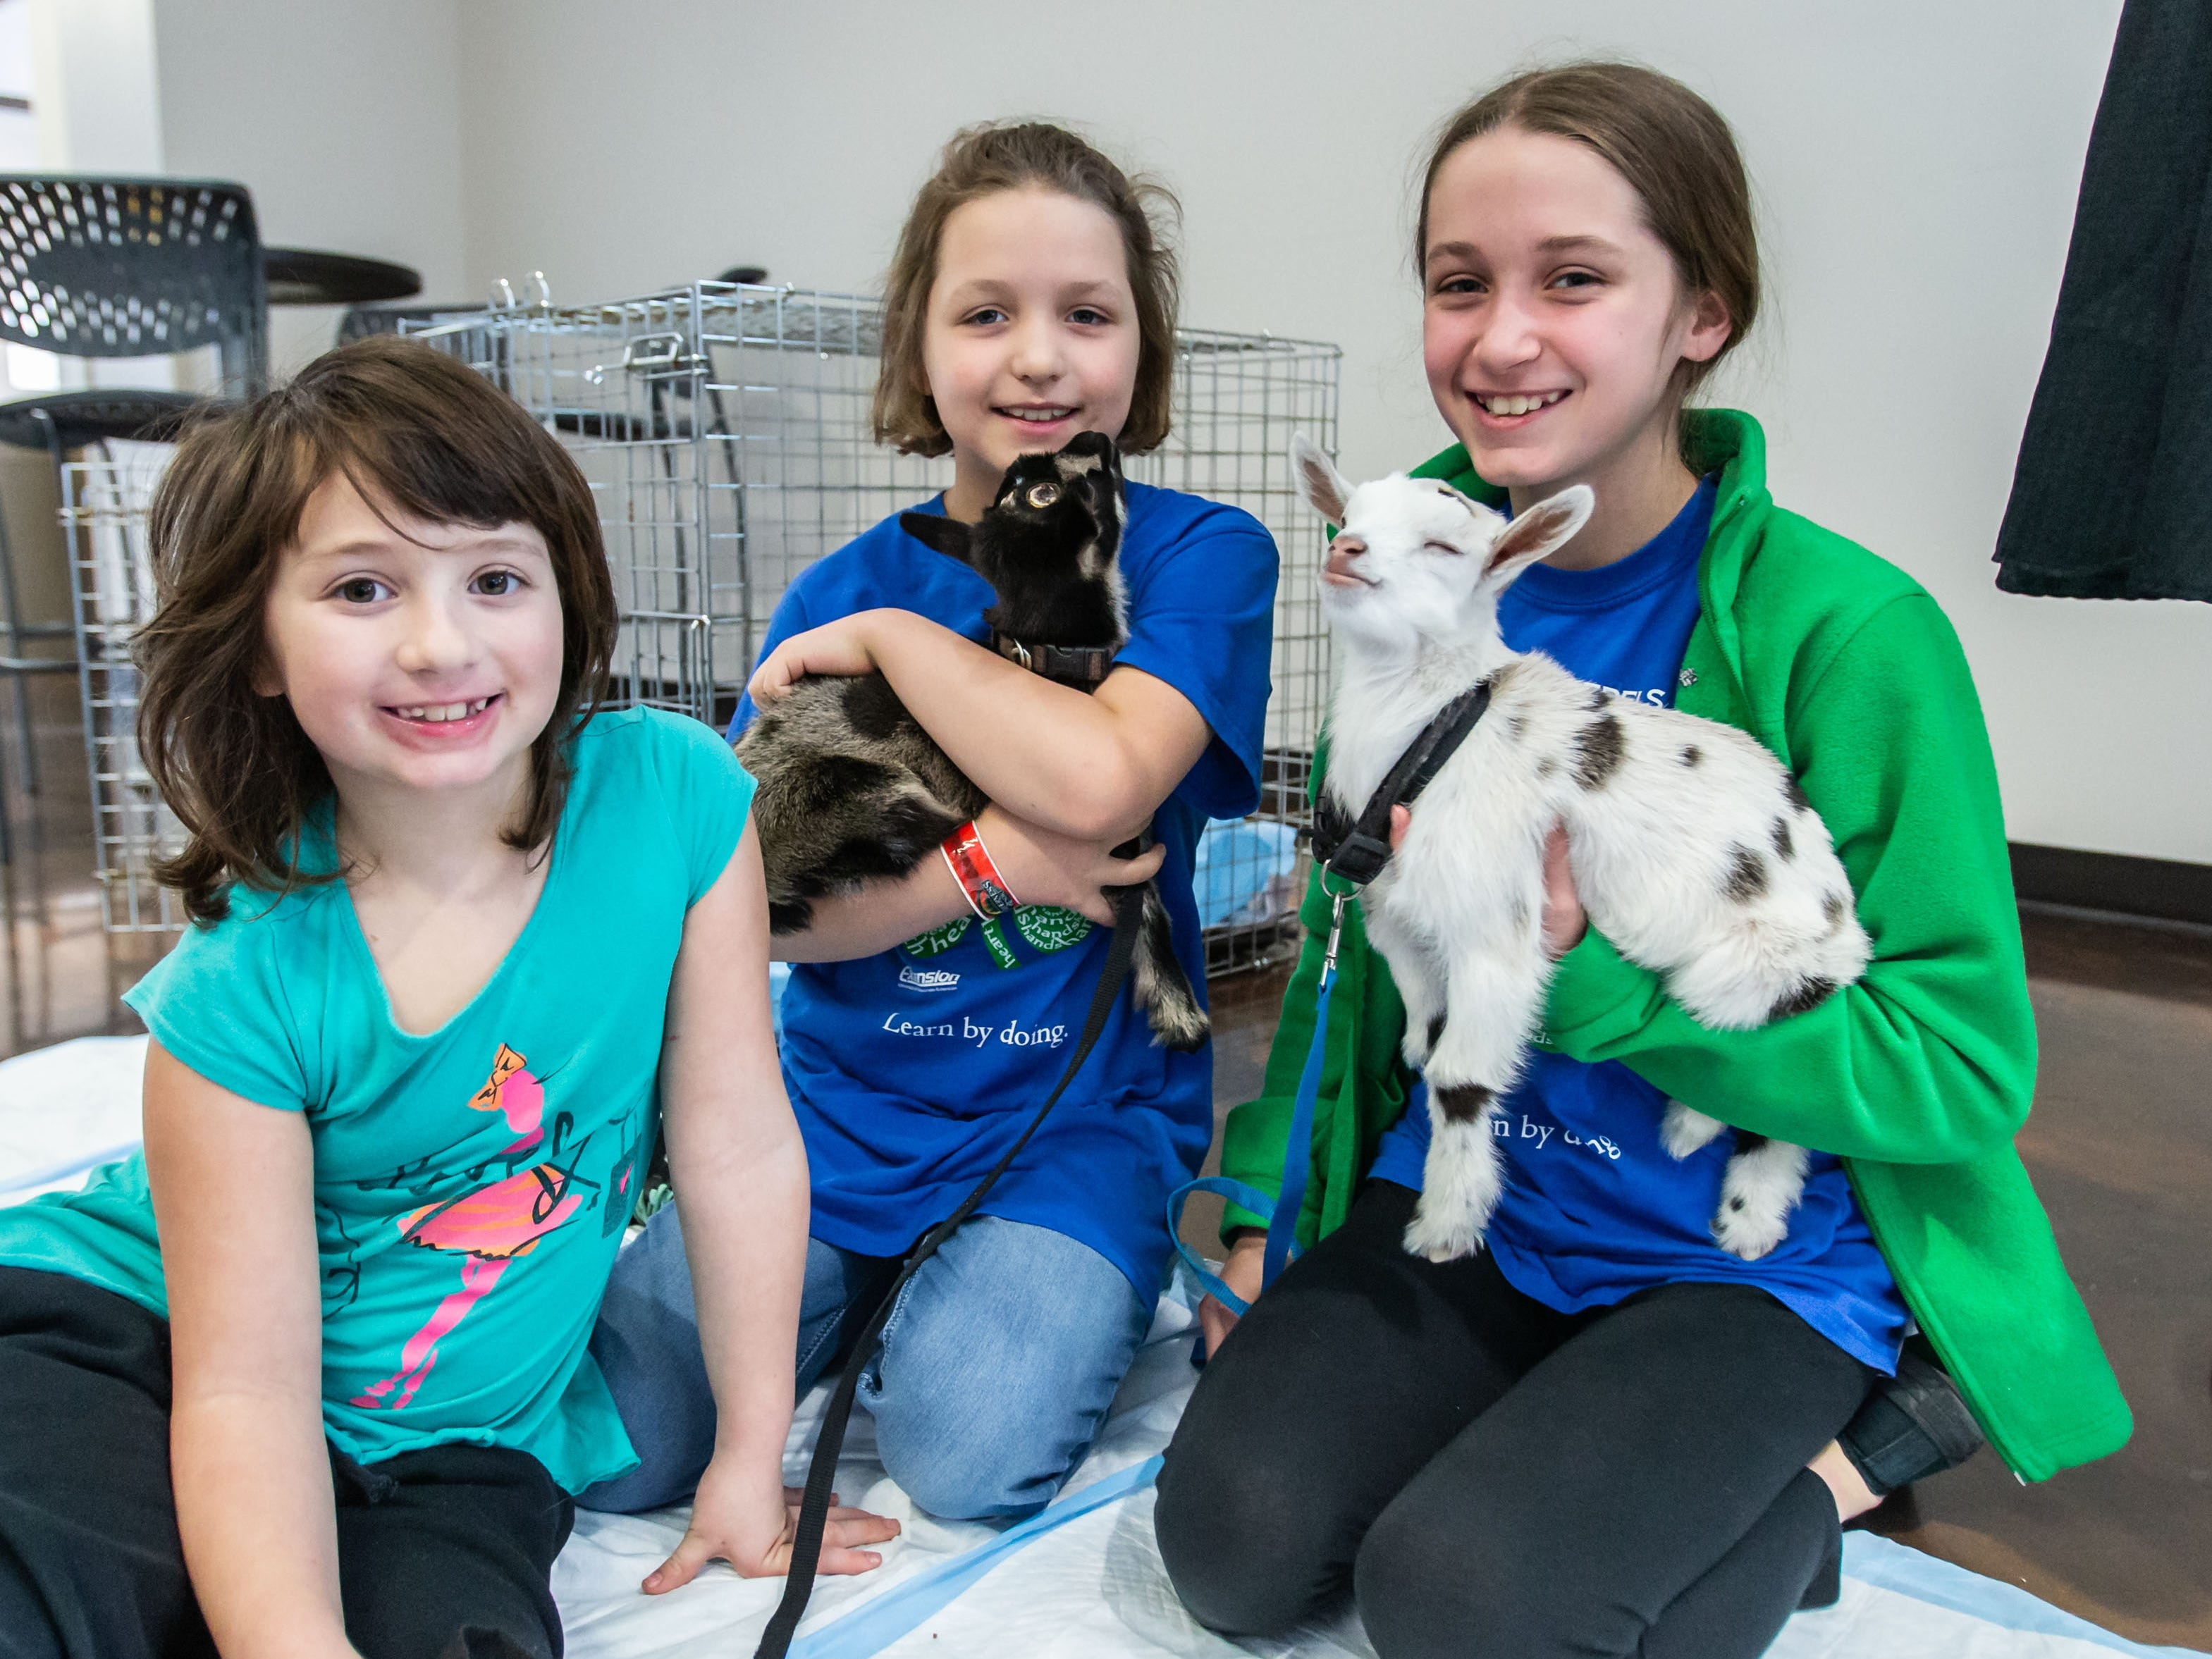 Julianna Datka (left), 7, of Lisbon visits with the Anna (center), 8, and Kaitlin Hackbarth, 12, and their one-week-old baby goats during the Winter Farmers Market at the Sussex Civic Center on Sunday, March 10, 2019.